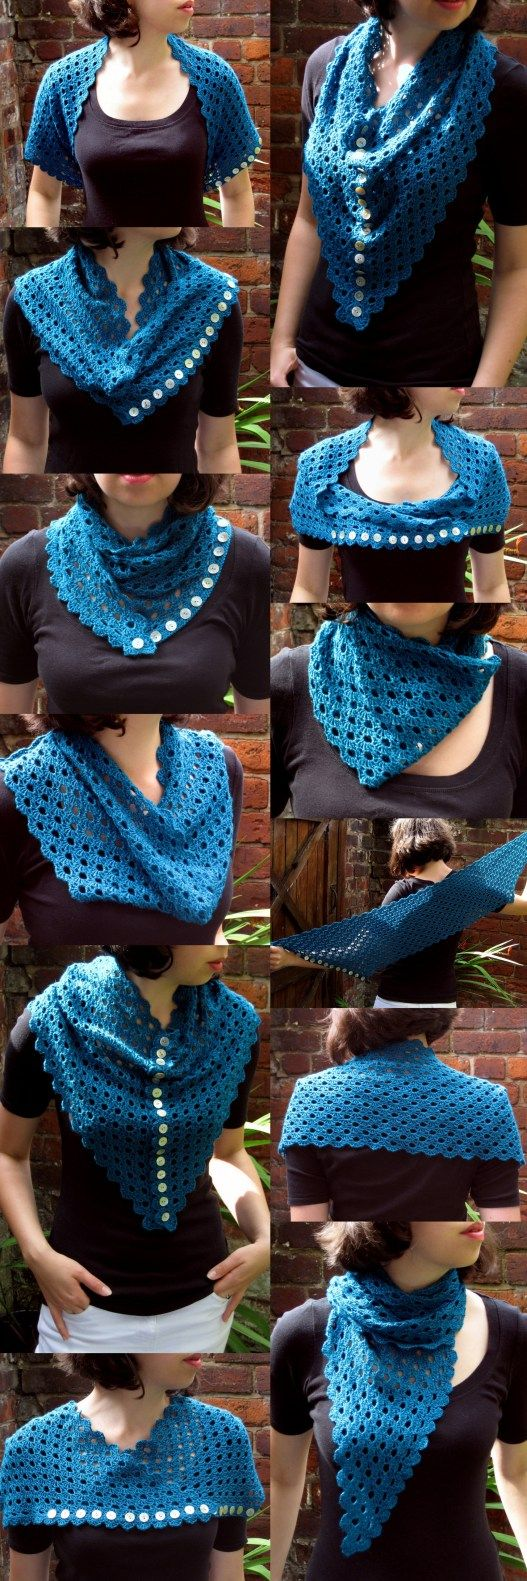 Looking for a gorgeous versatile shawl/cowl/shrug? We've found it! The Multiplicity Buttoned Shawl Free Crochet Pattern can be worn 10 different ways.